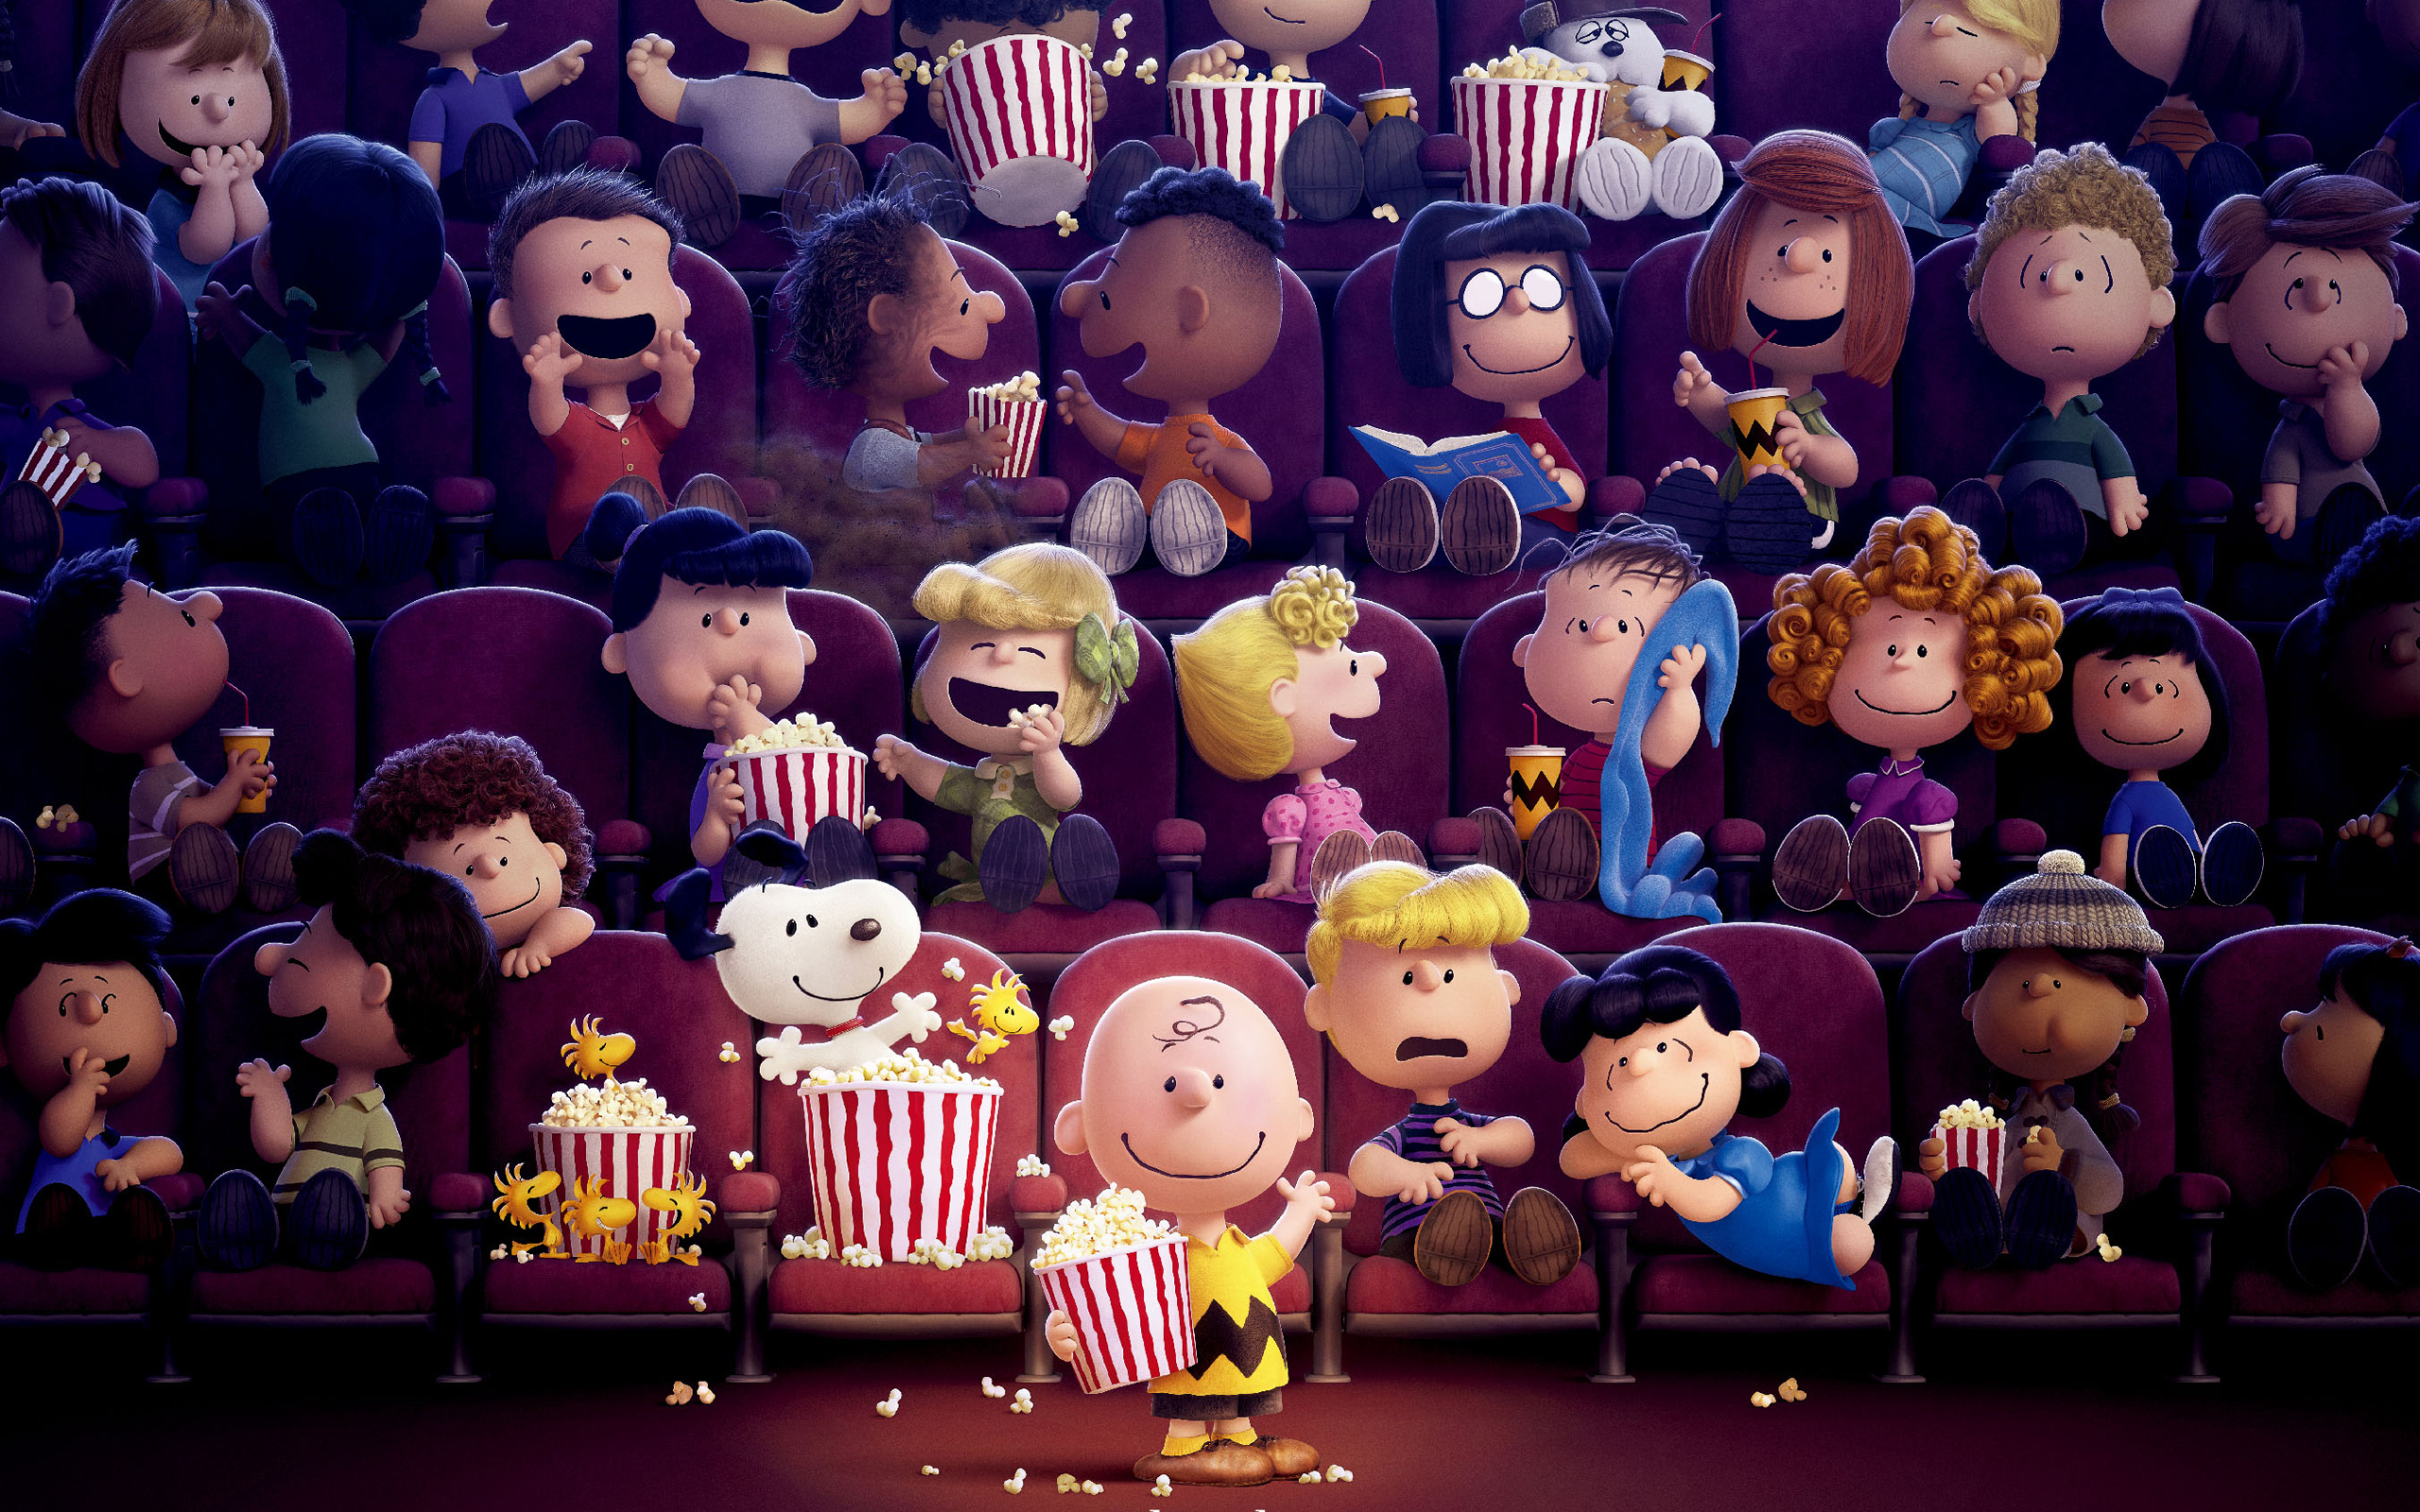 the peanuts movie full hd wallpaper and background image | 2560x1600